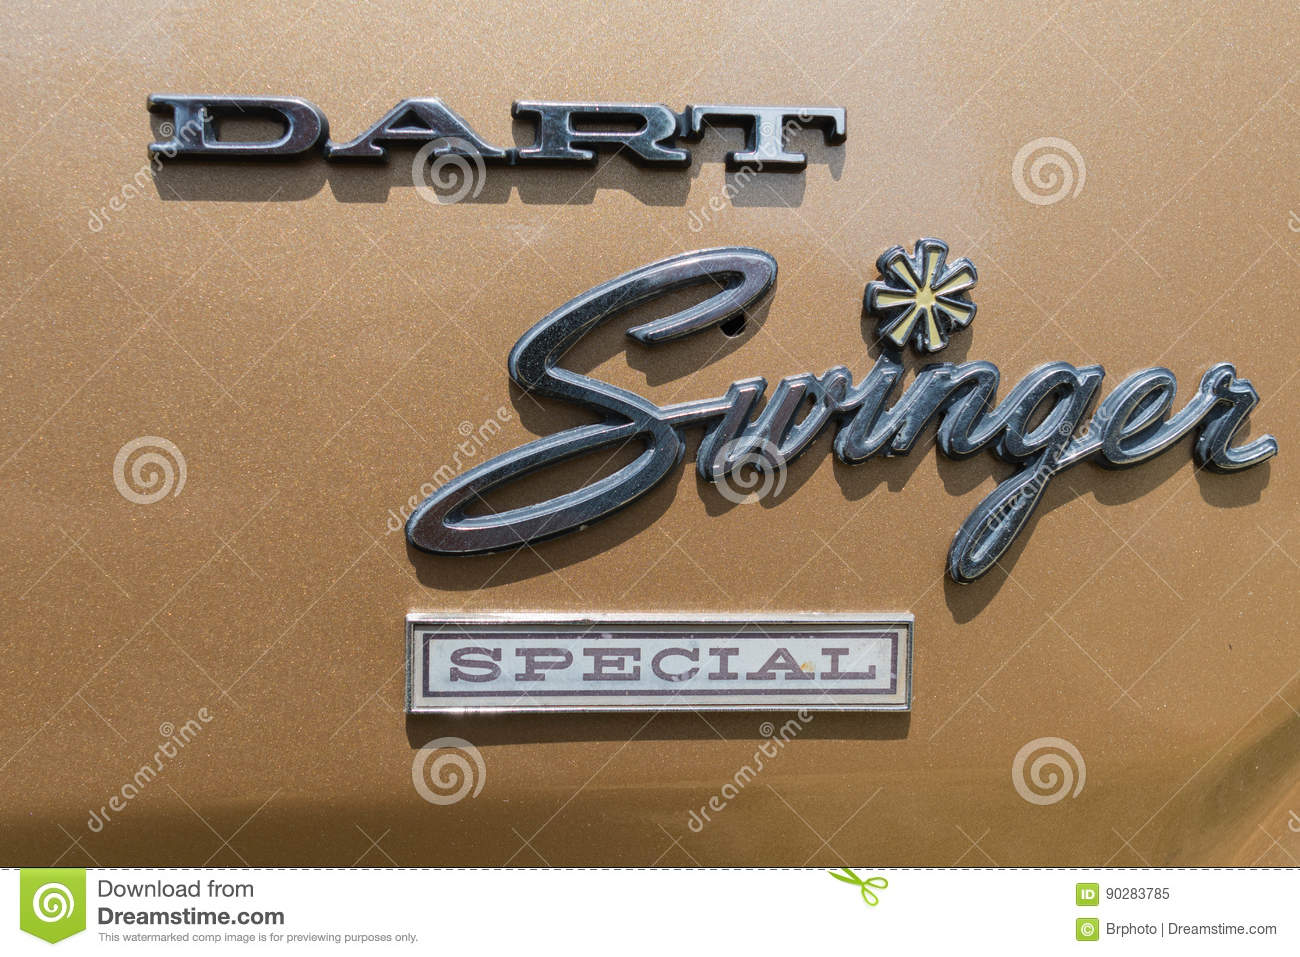 Dodge Dart Swinger Emblem On Display Editorial Image Image Of Auto